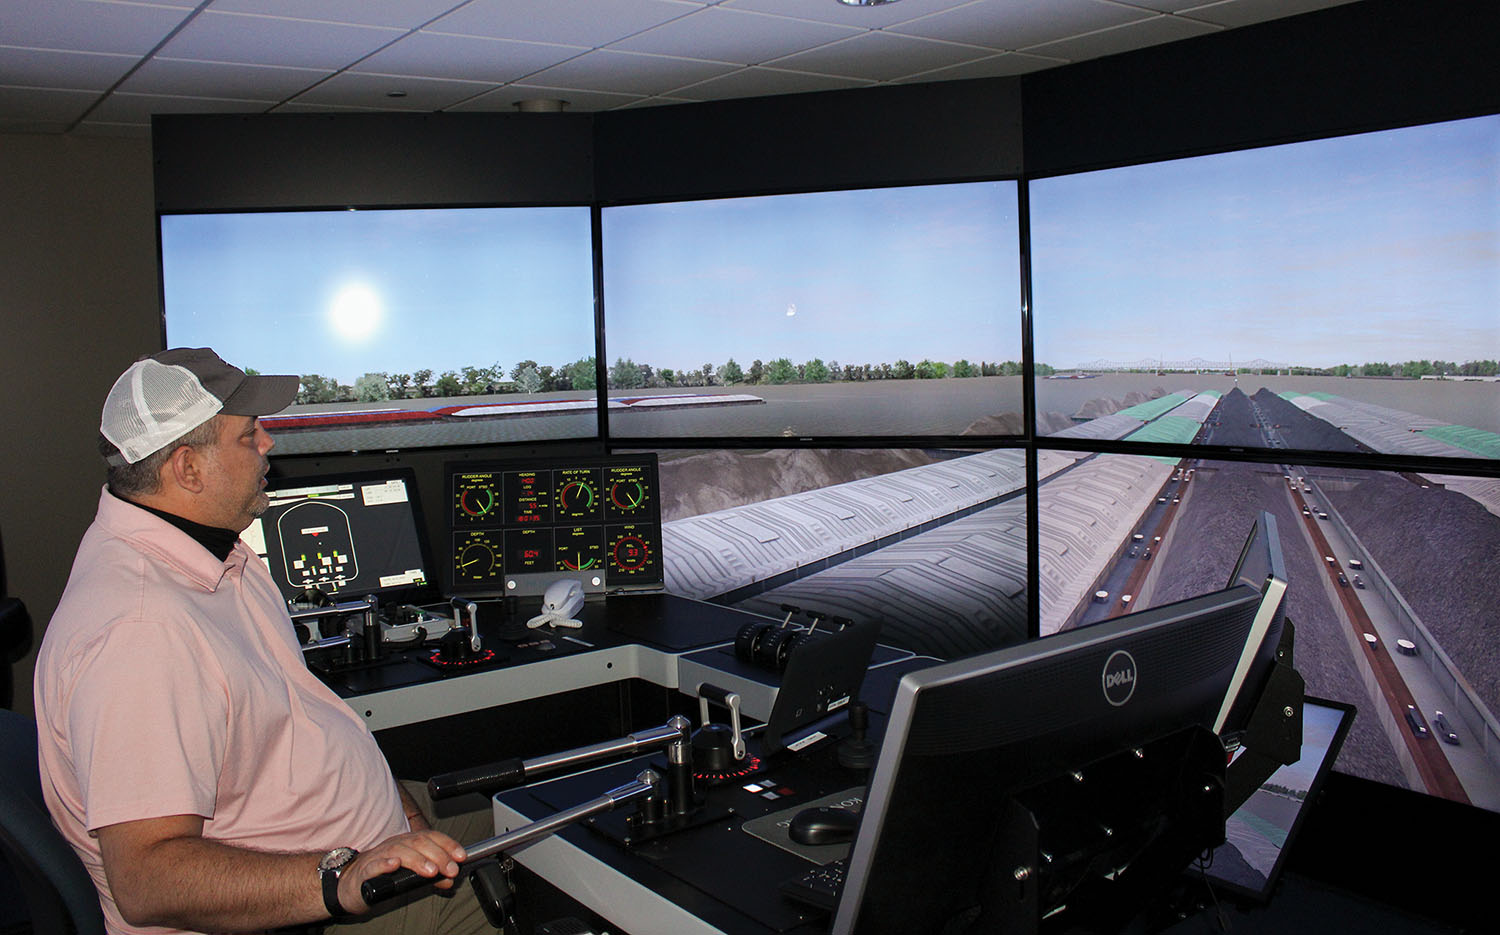 Ingram Barge Company Capt. Joseph Eubanks, piloting a Seamen's Church Institute towboat simulator, is downbound toward the piers of a new U.S. 51 bridge over the Ohio River, connecting Cairo, Ill., and Wickliffe, Ky. (Photo by Shelley Byrne)